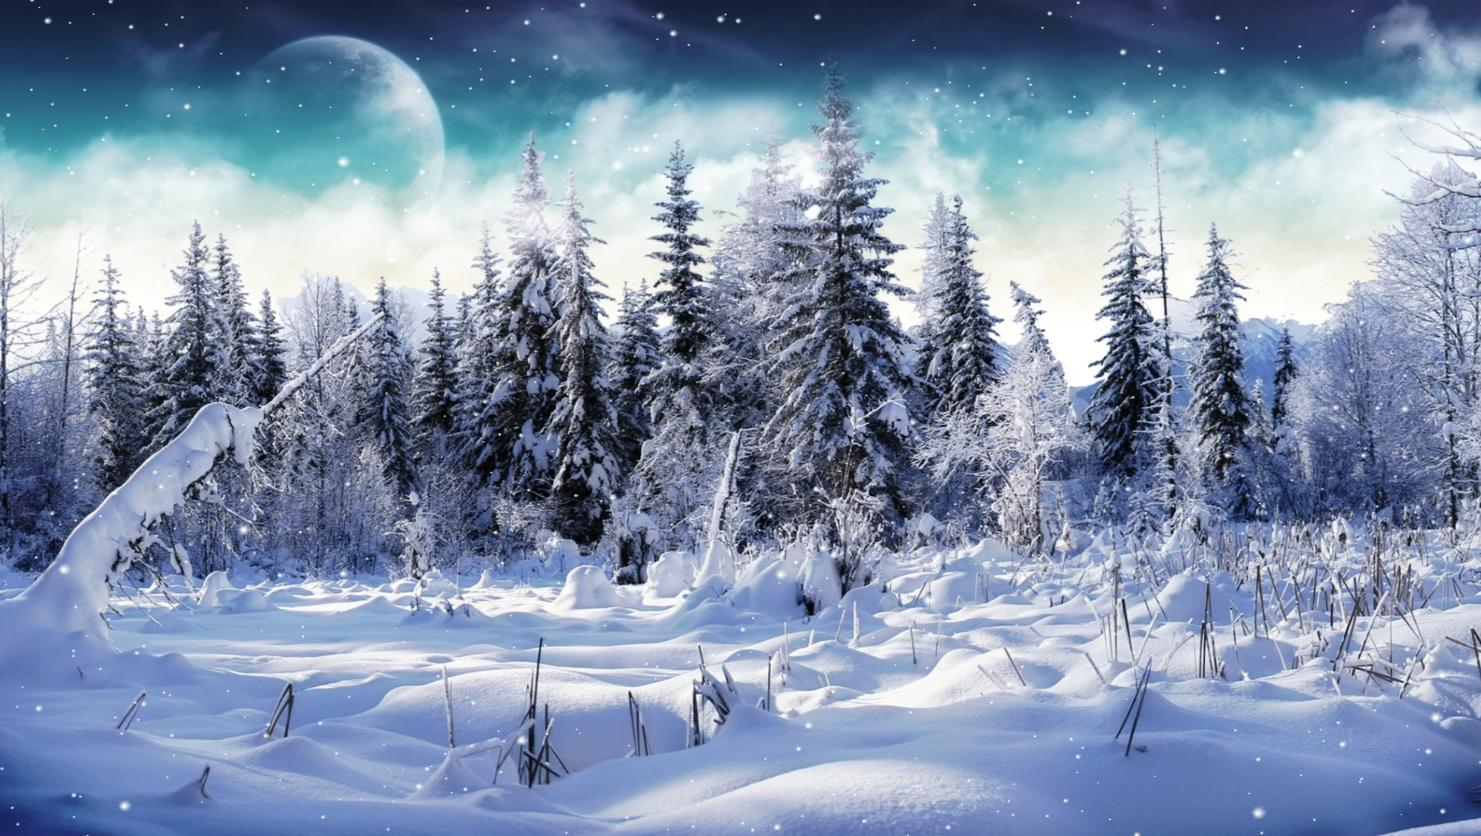 Winter Wallpaper Screensavers Cold Winter Screensaver Animated Wallpaper Torrent Download